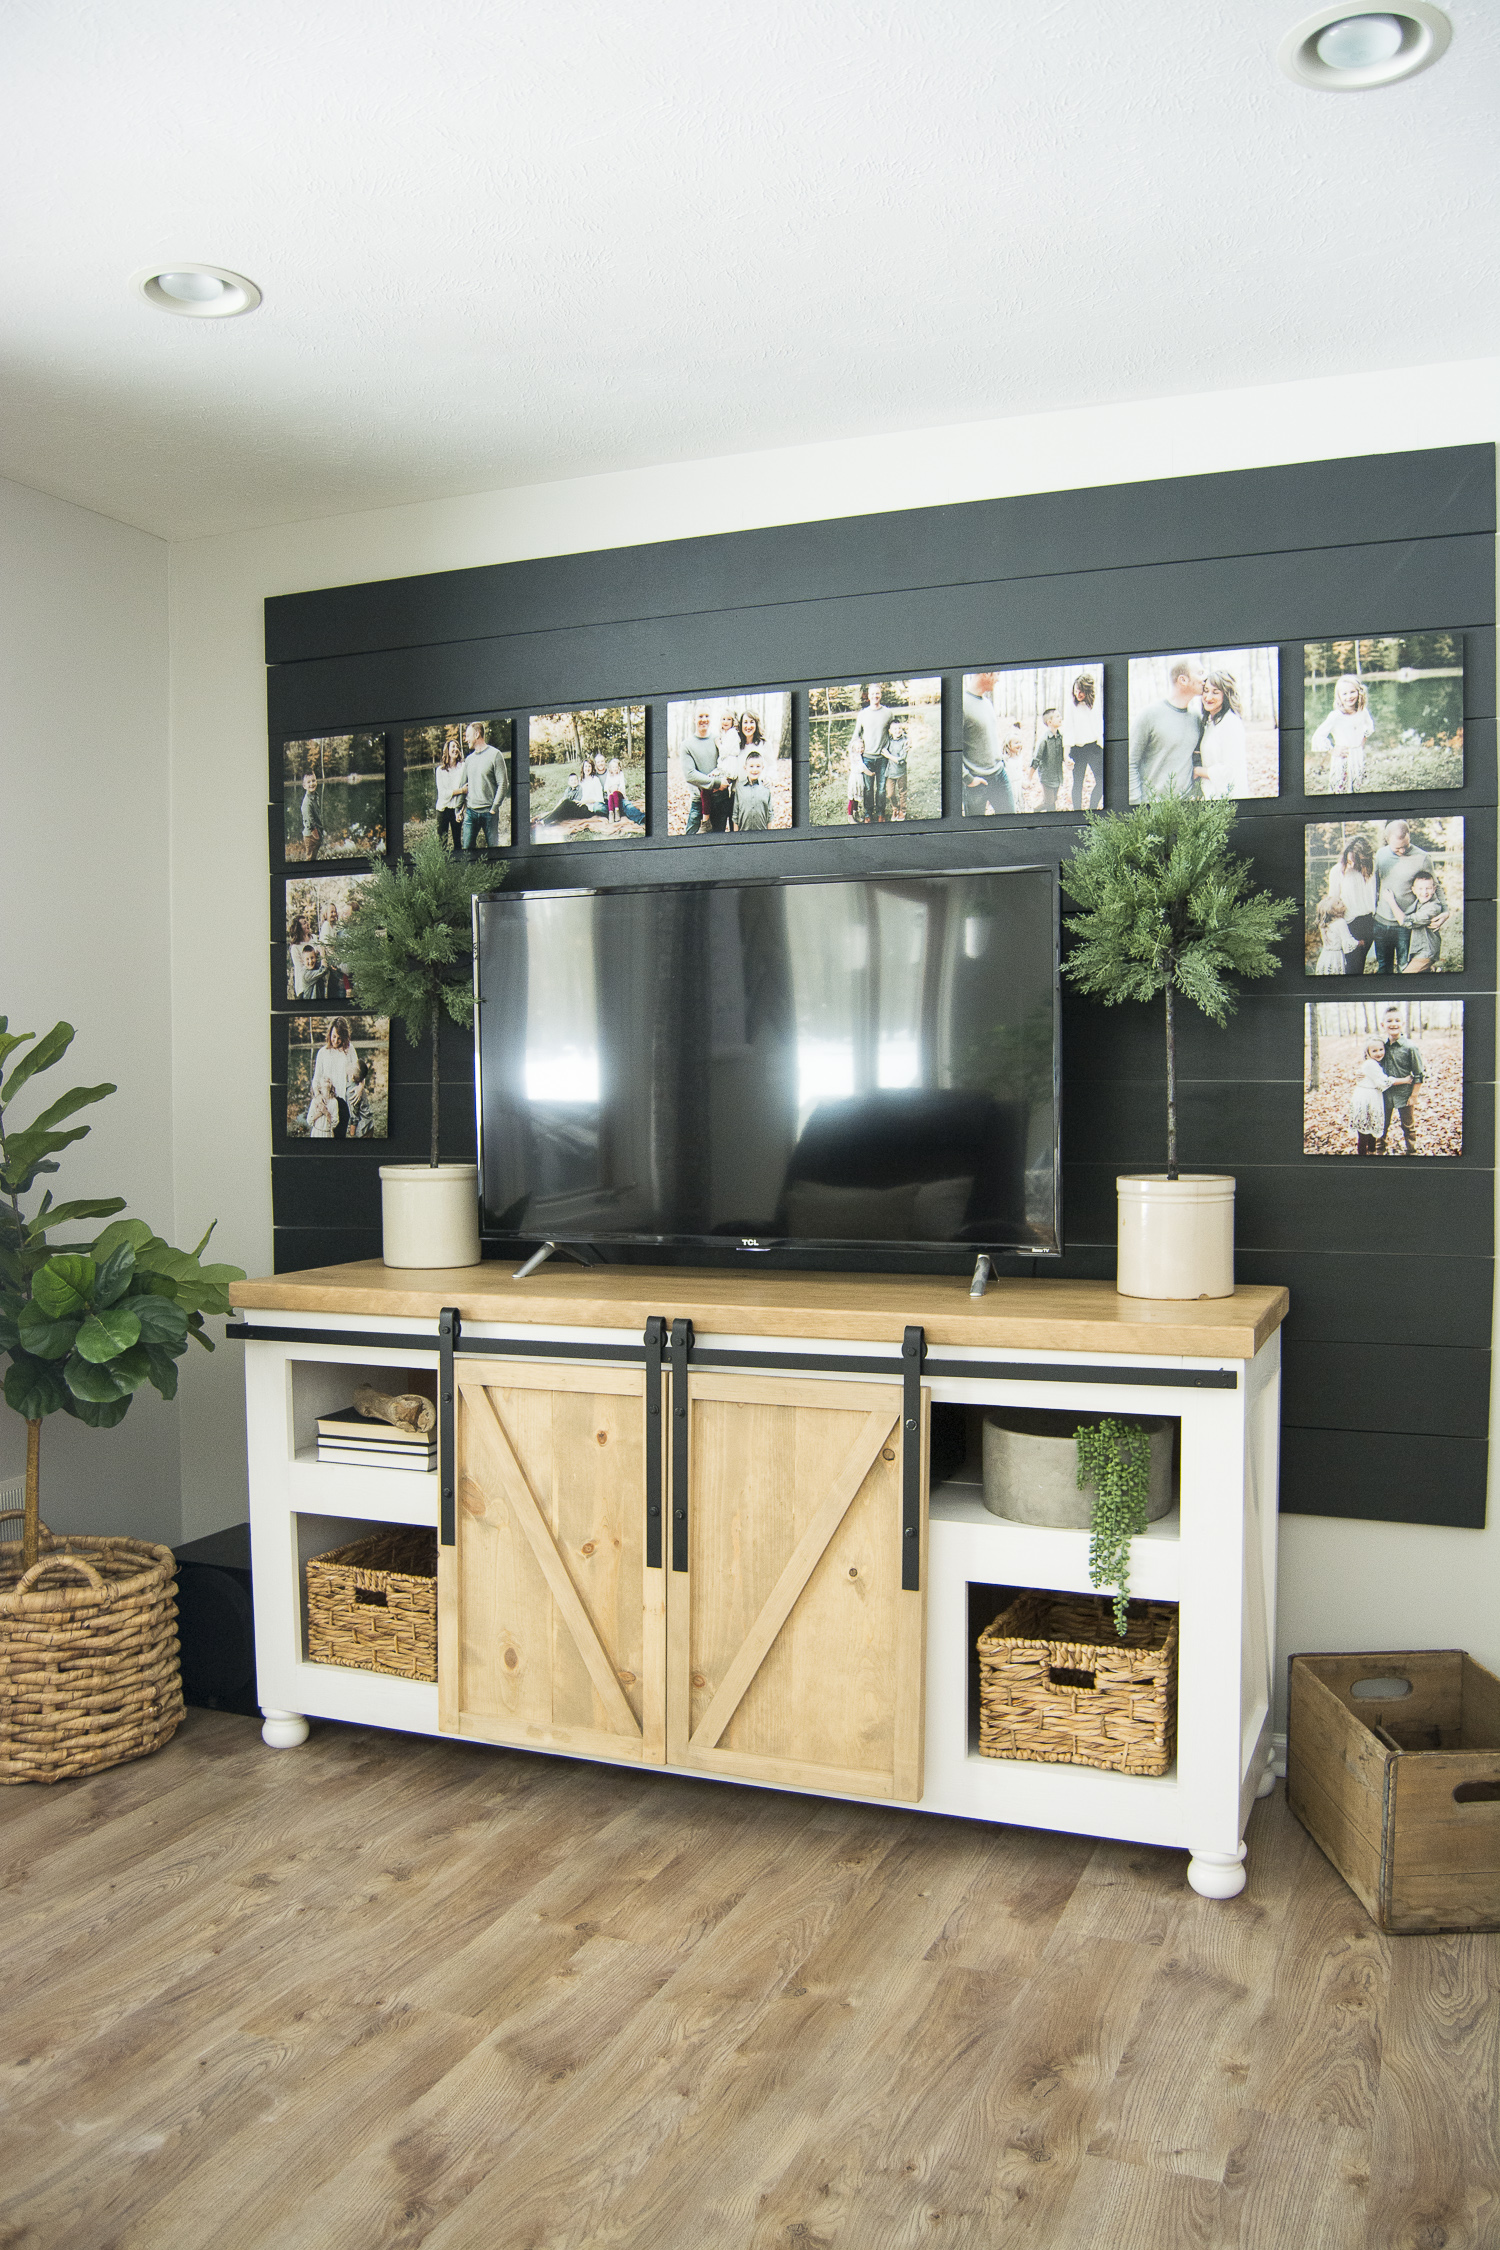 Media console storage ideas.